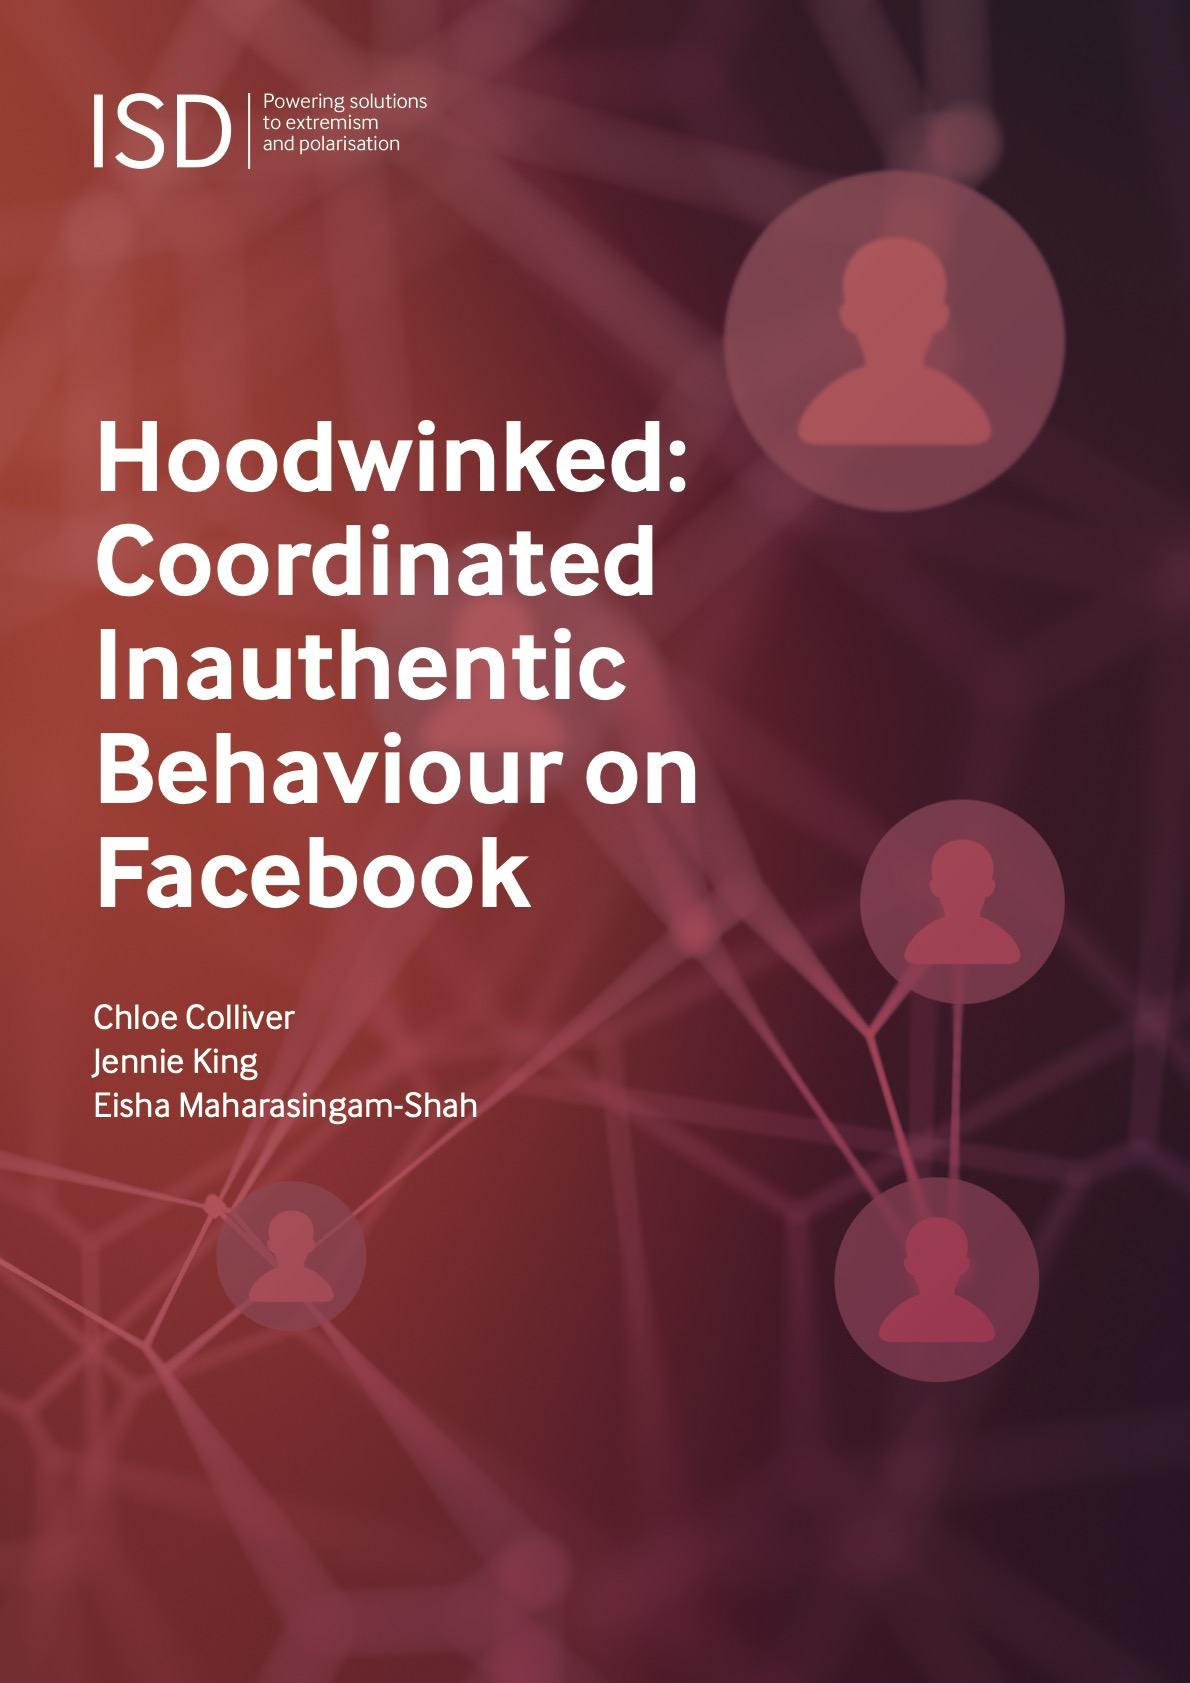 Hoodwinked: Coordinated Inauthentic Behaviour on Facebook